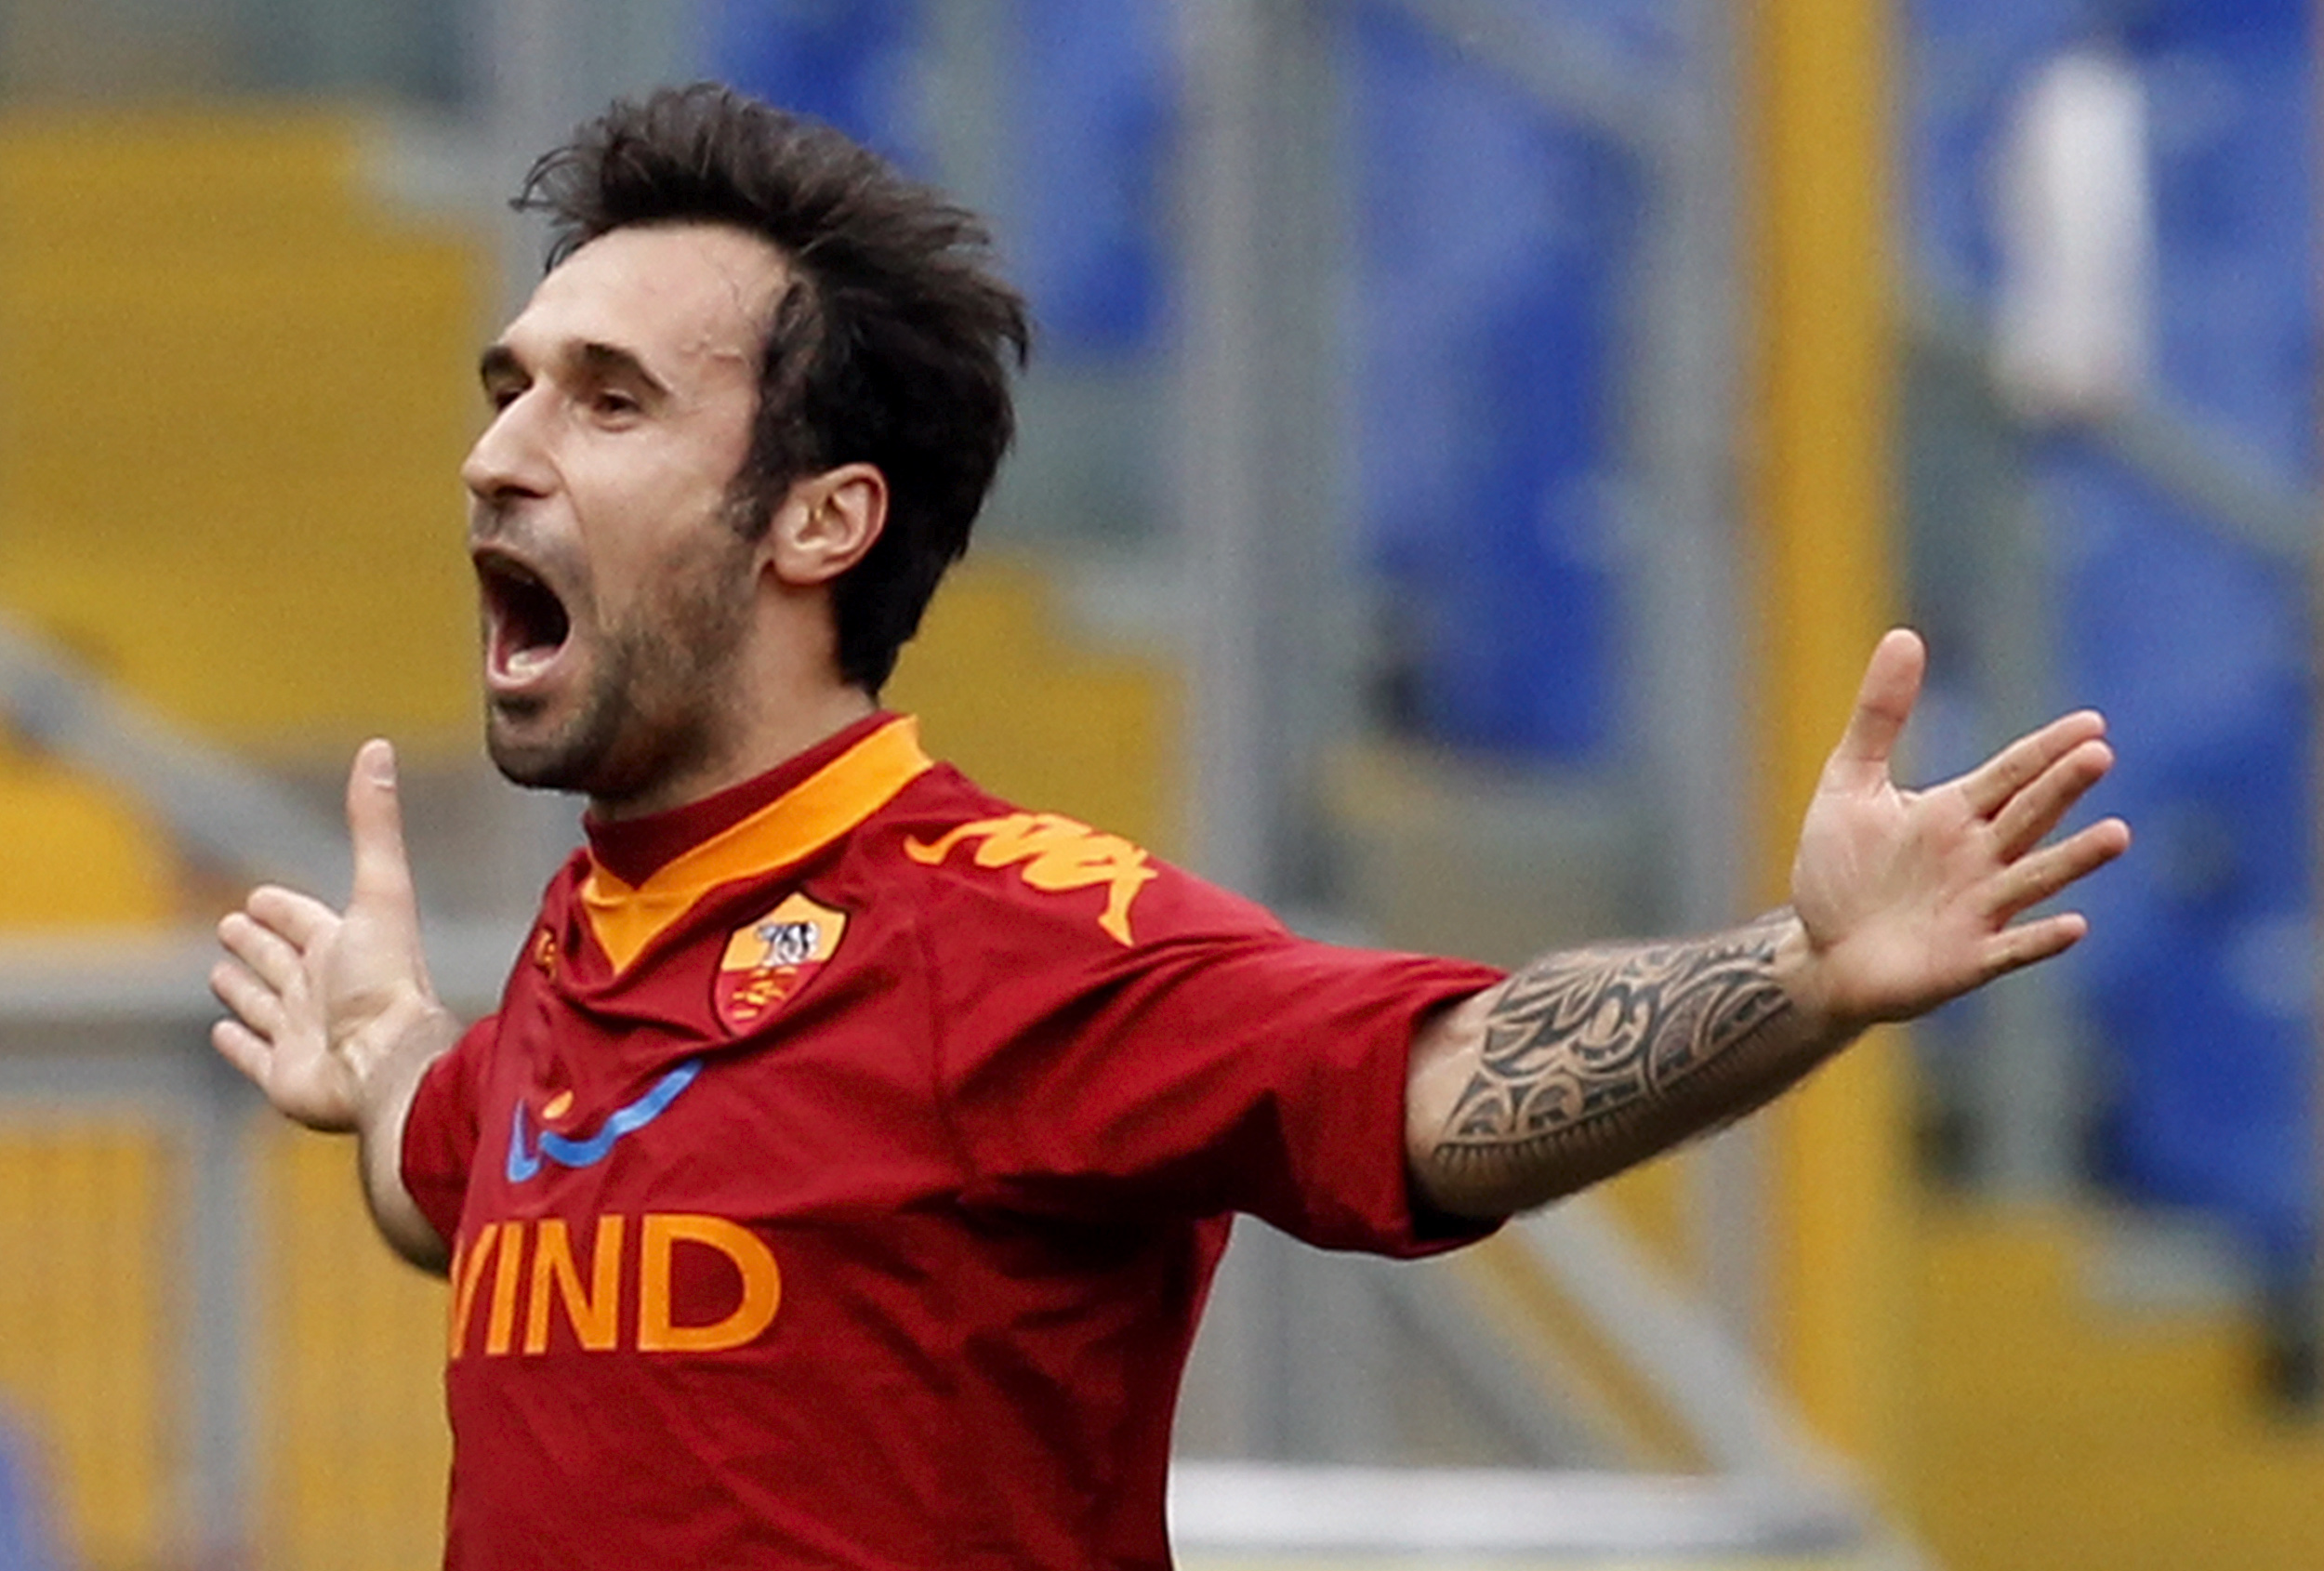 AS Roma's Vucinic celebrates after scoring against Catania during their Italian Serie A soccer match in Rome